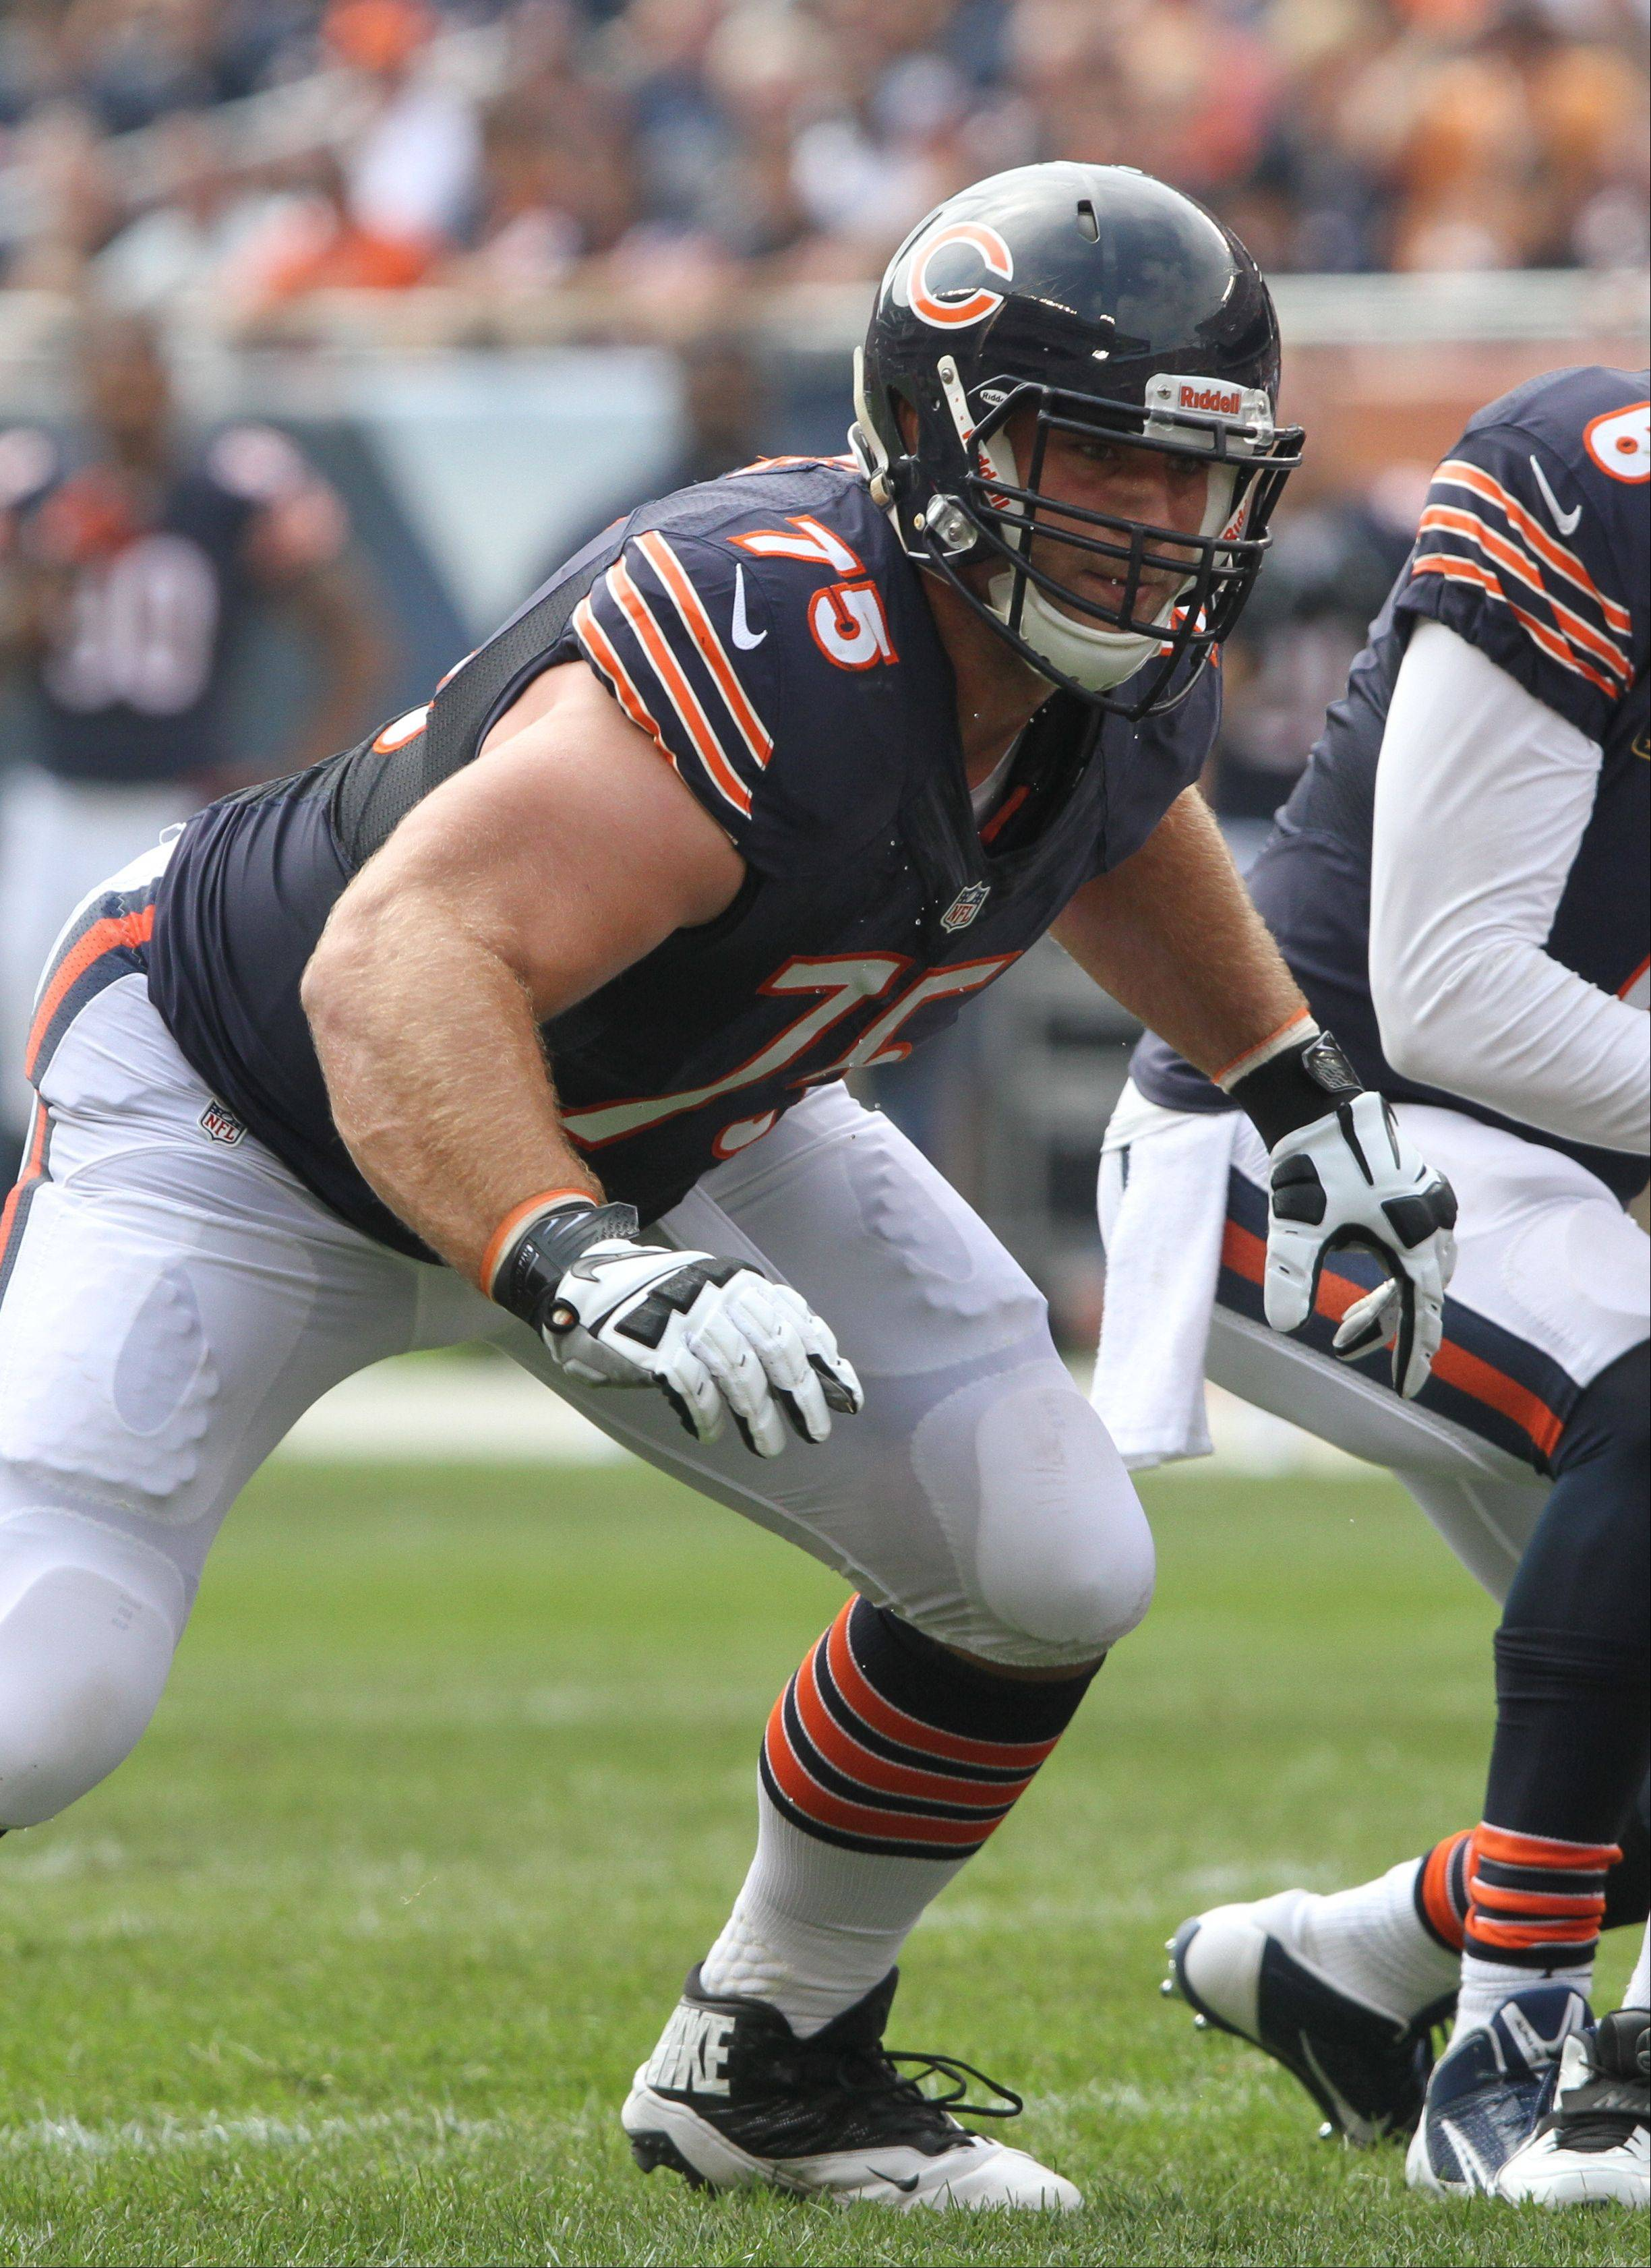 While Bears offensive guard Kyle Long struggled in the season opener, his line coach is confident Long can correct his mistakes and get better.